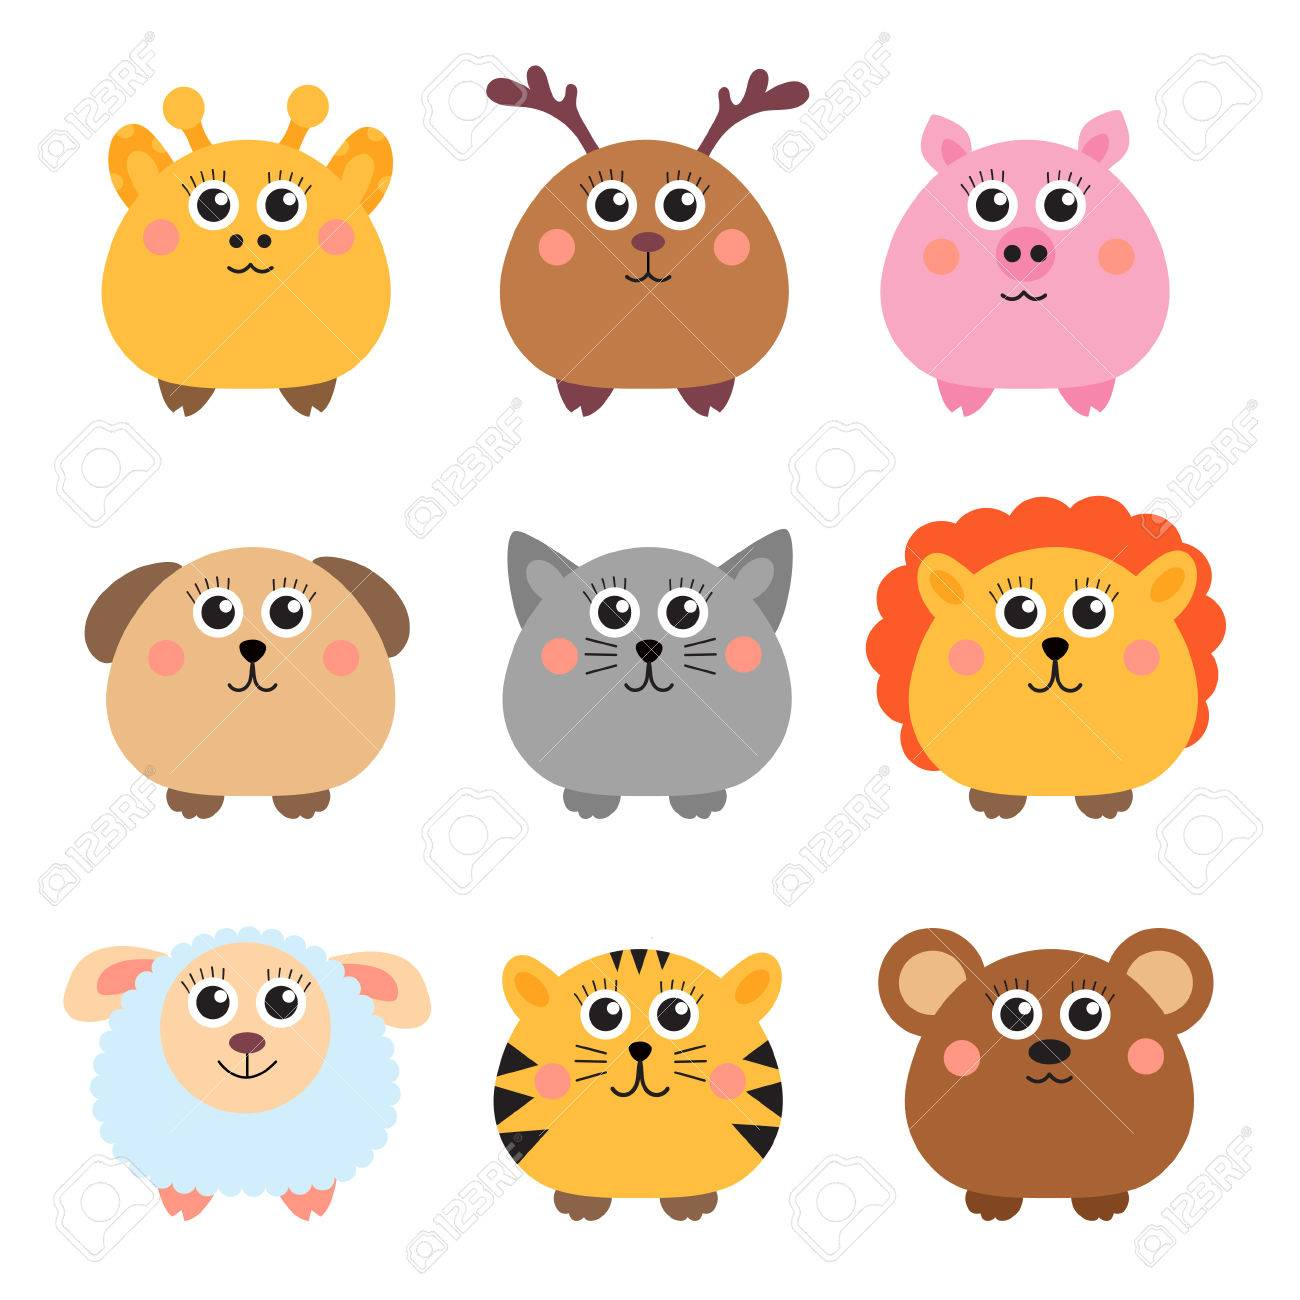 Image of: Funny Videos Set Of Cute Animals Rounded Shape Round Animals Vector Illustration Stock Vector 58898814 123rfcom Set Of Cute Animals Rounded Shape Round Animals Vector